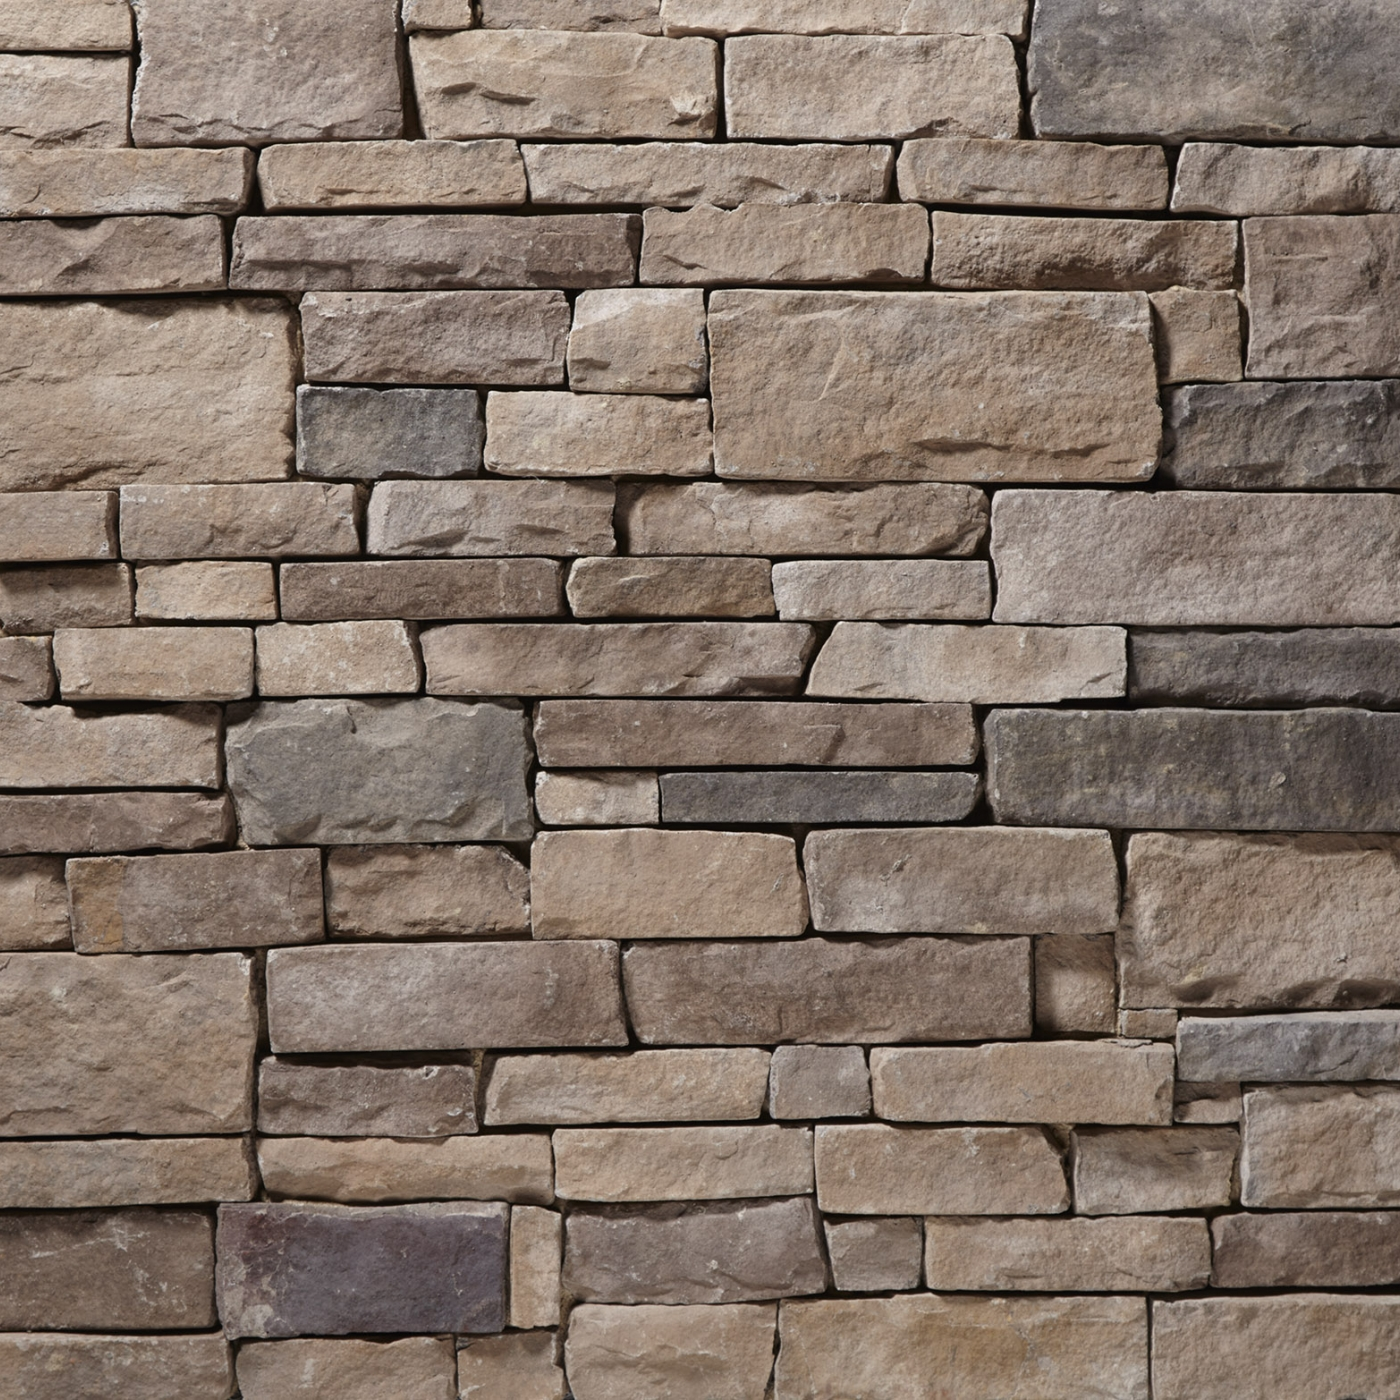 Aspen Ledgestone Stone Veneer from Environmental StoneWorks